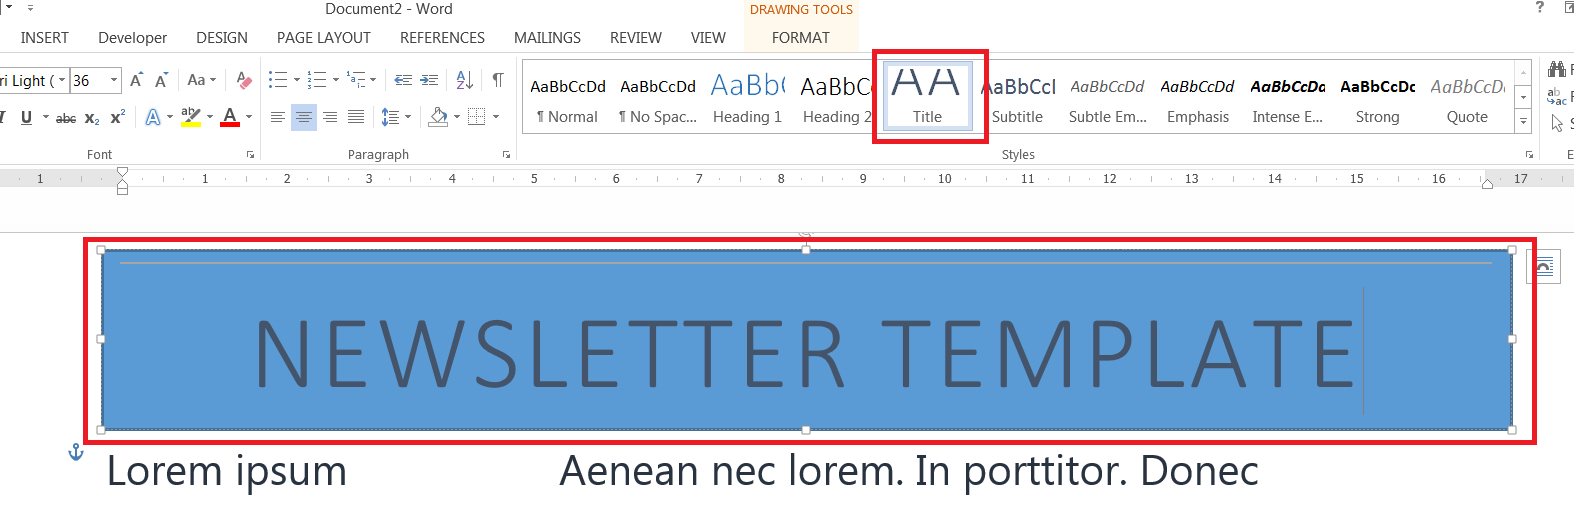 How To Easily Create A Newsletter Template In Microsoft Word Within How To Insert Template In Word